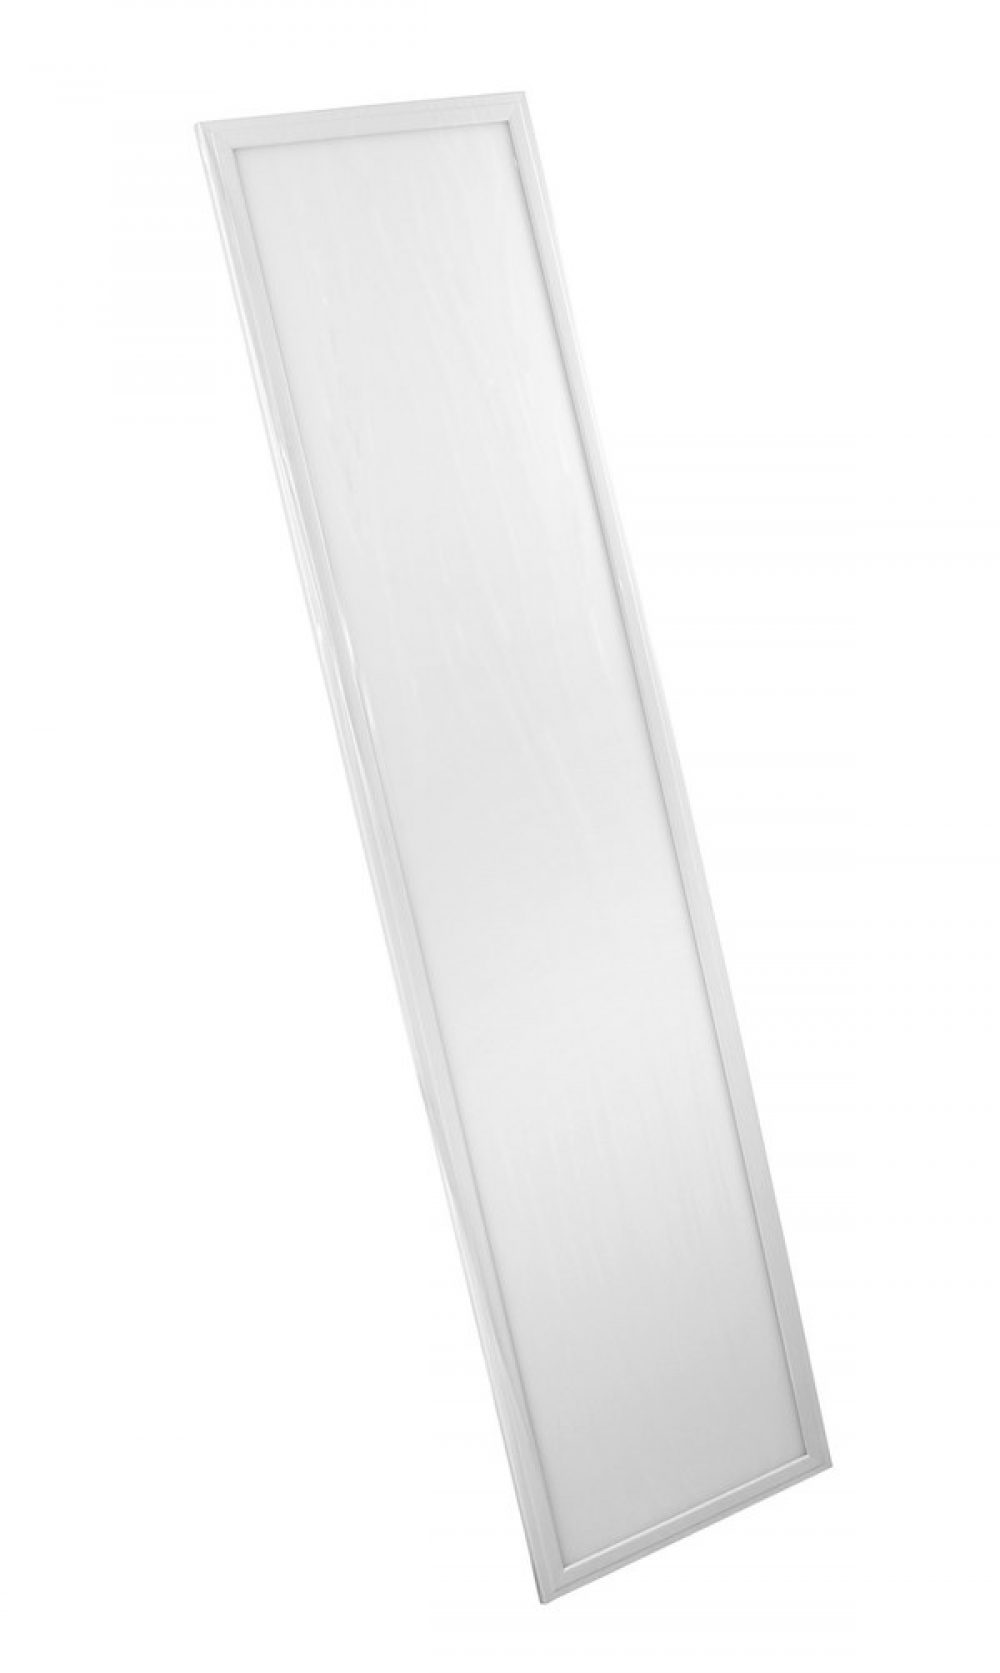 LED Panel Light AU01-PL12030-40W/3K-N